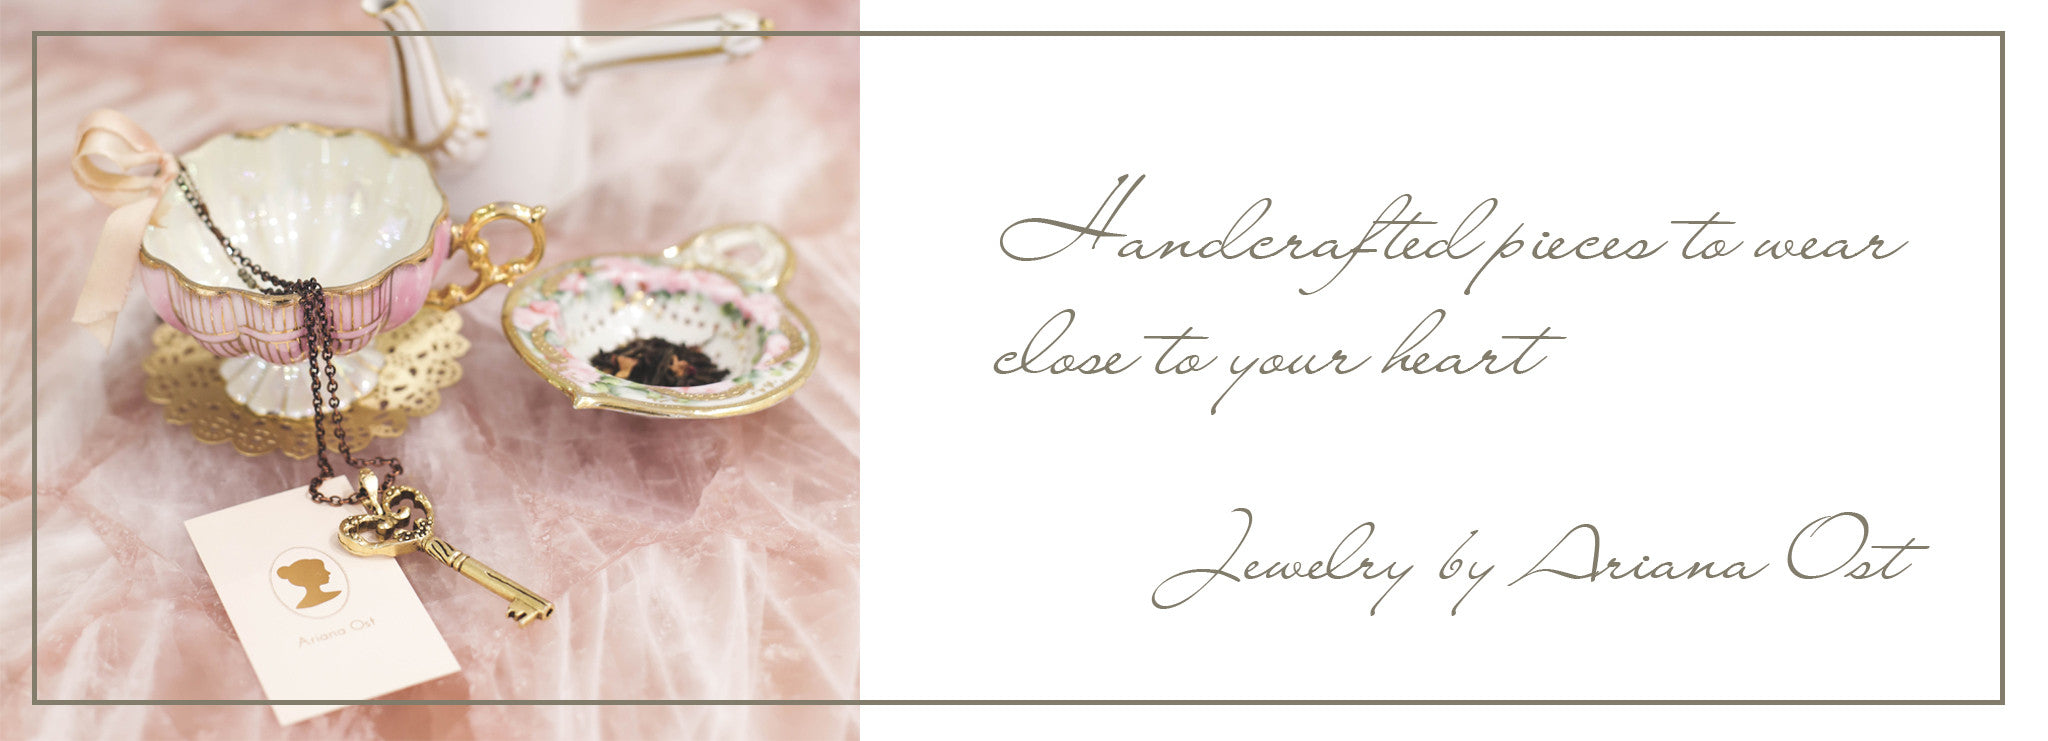 Handcrafted pet, hair, and personal jewelry to wear close to your heart.